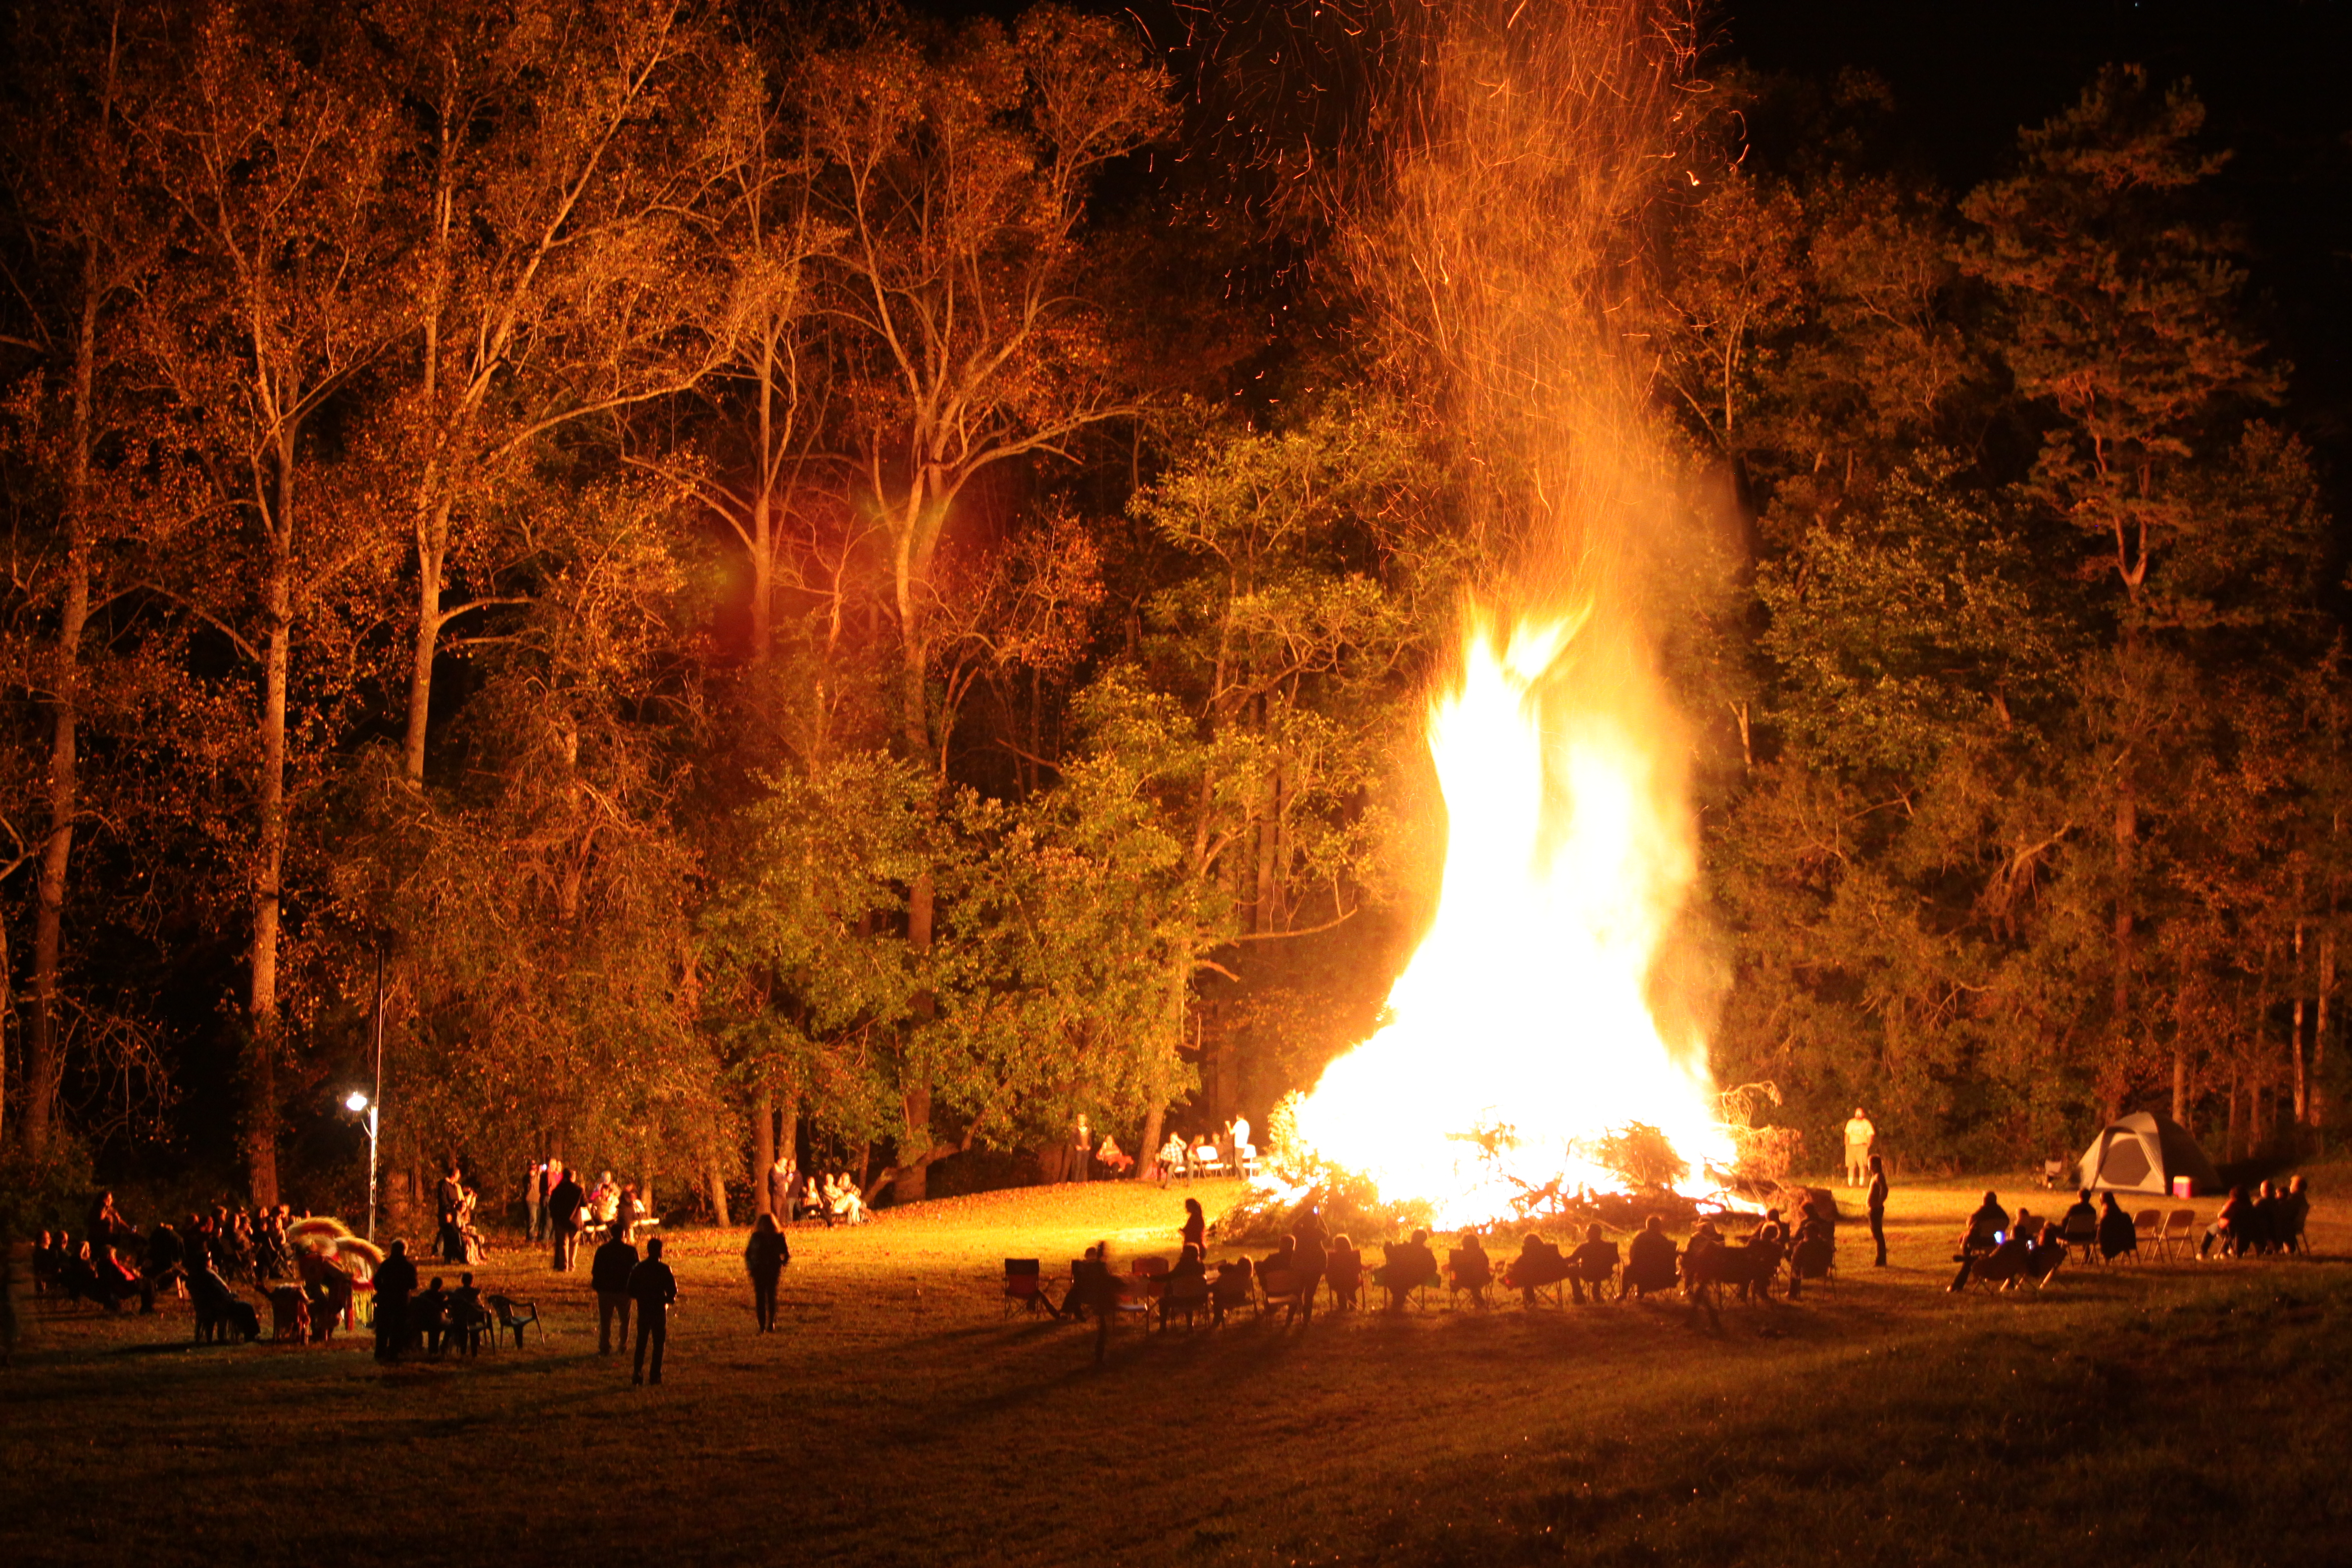 Chief's Great Bonfire Banquet